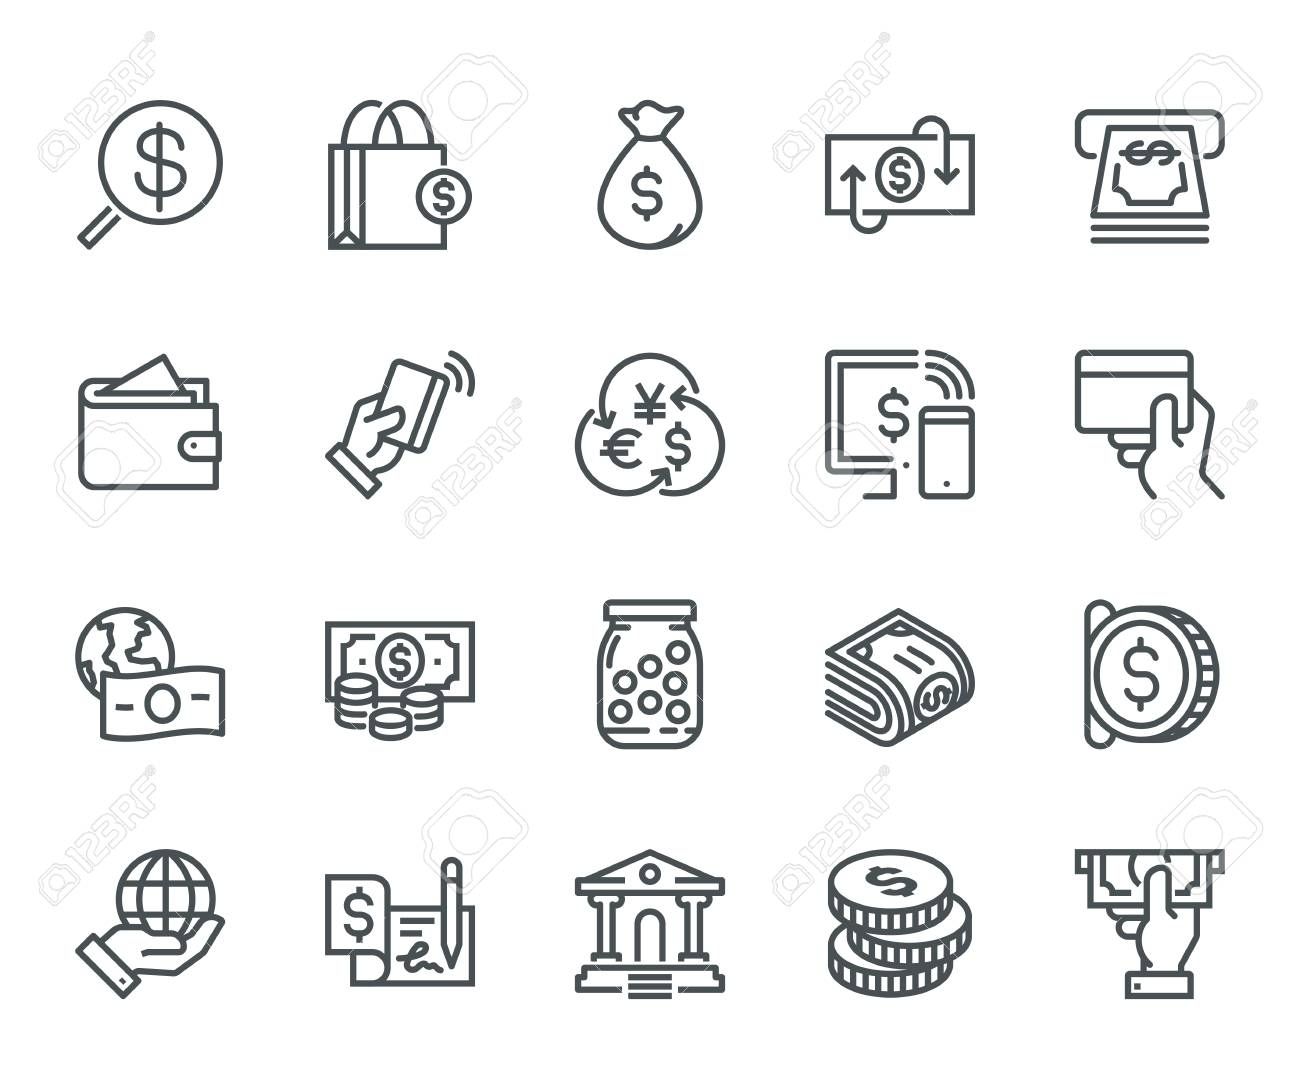 Money Icons, Monoline concept The icons were created on a 48x48 pixel aligned, perfect grid providing a clean and crisp appearance. Adjustable stroke weight. - 86671451